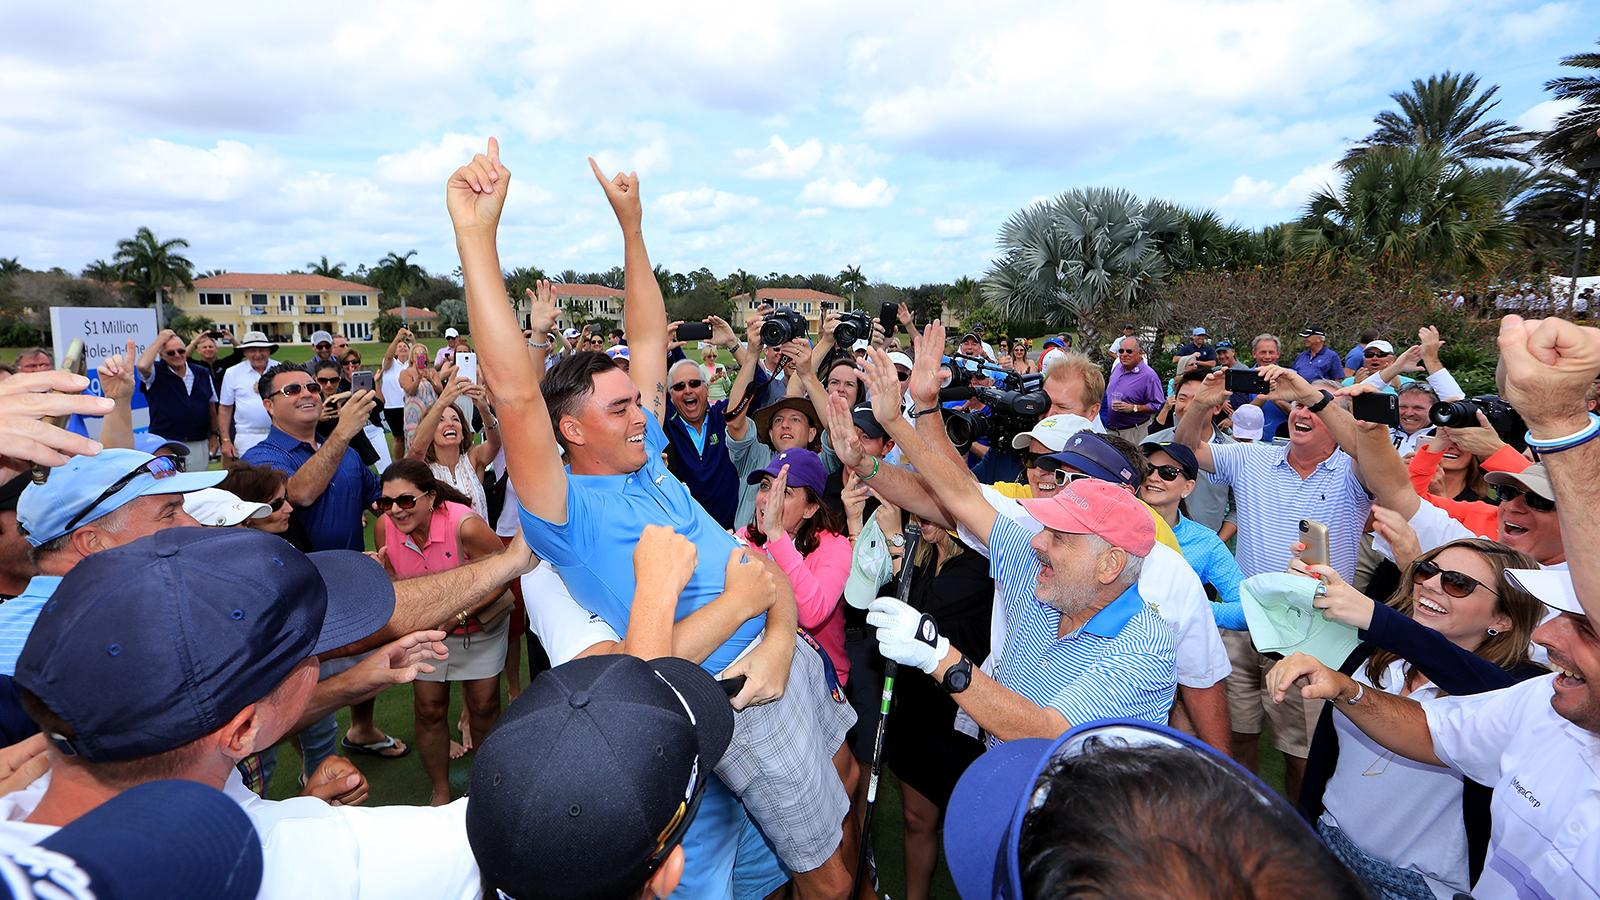 Rickie Fowler, the star of the day, raised $1 million for Els for Autism with a stunning hole-in-one.